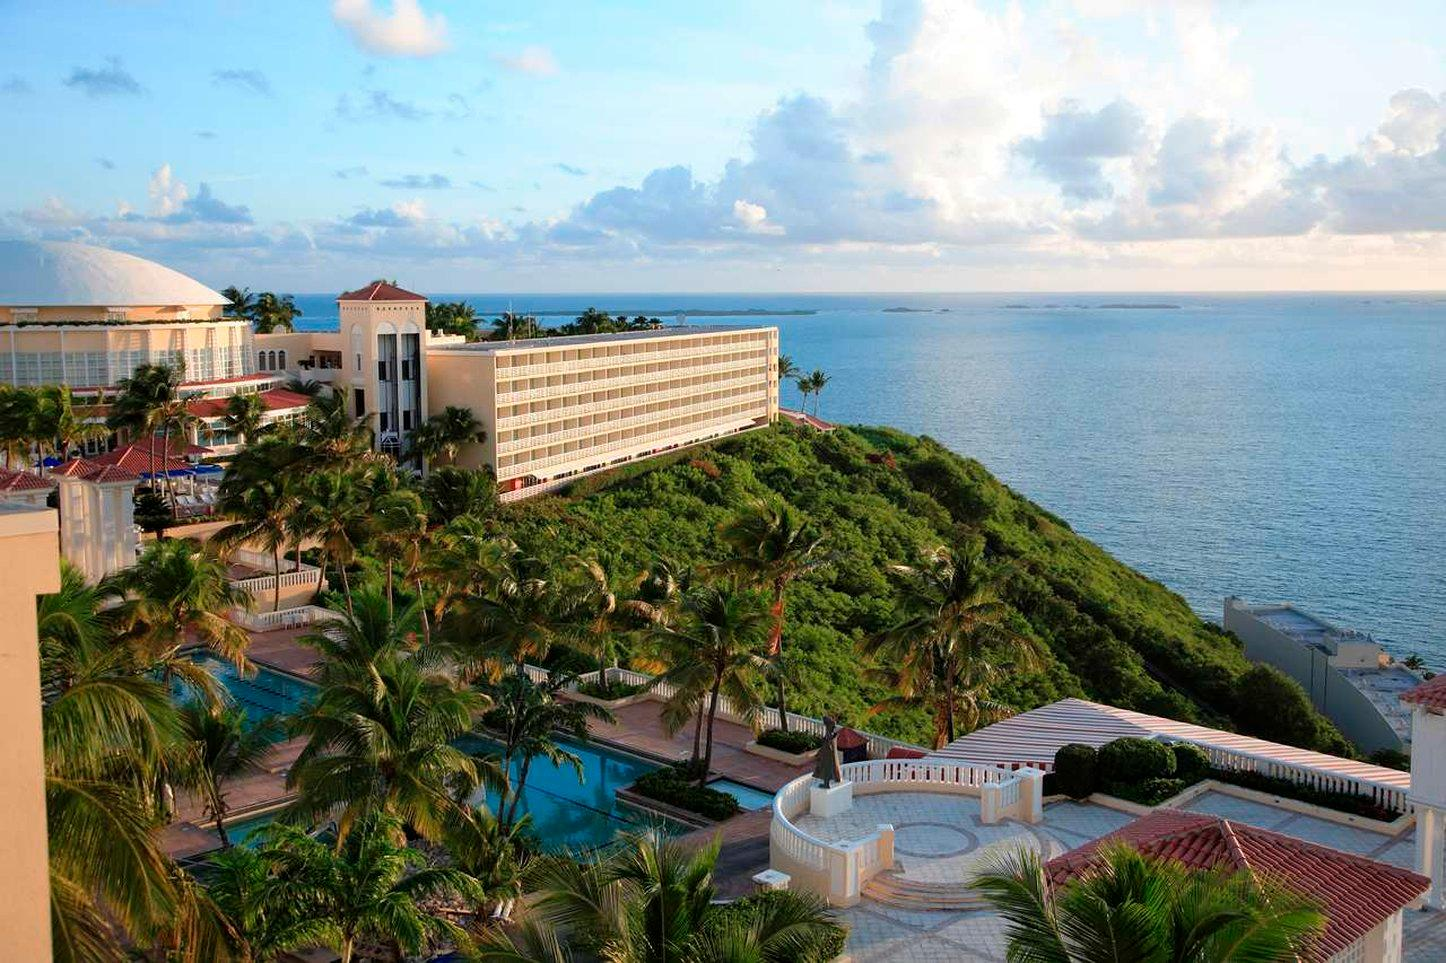 El Conquistador Resort, A Waldorf Astoria Resort